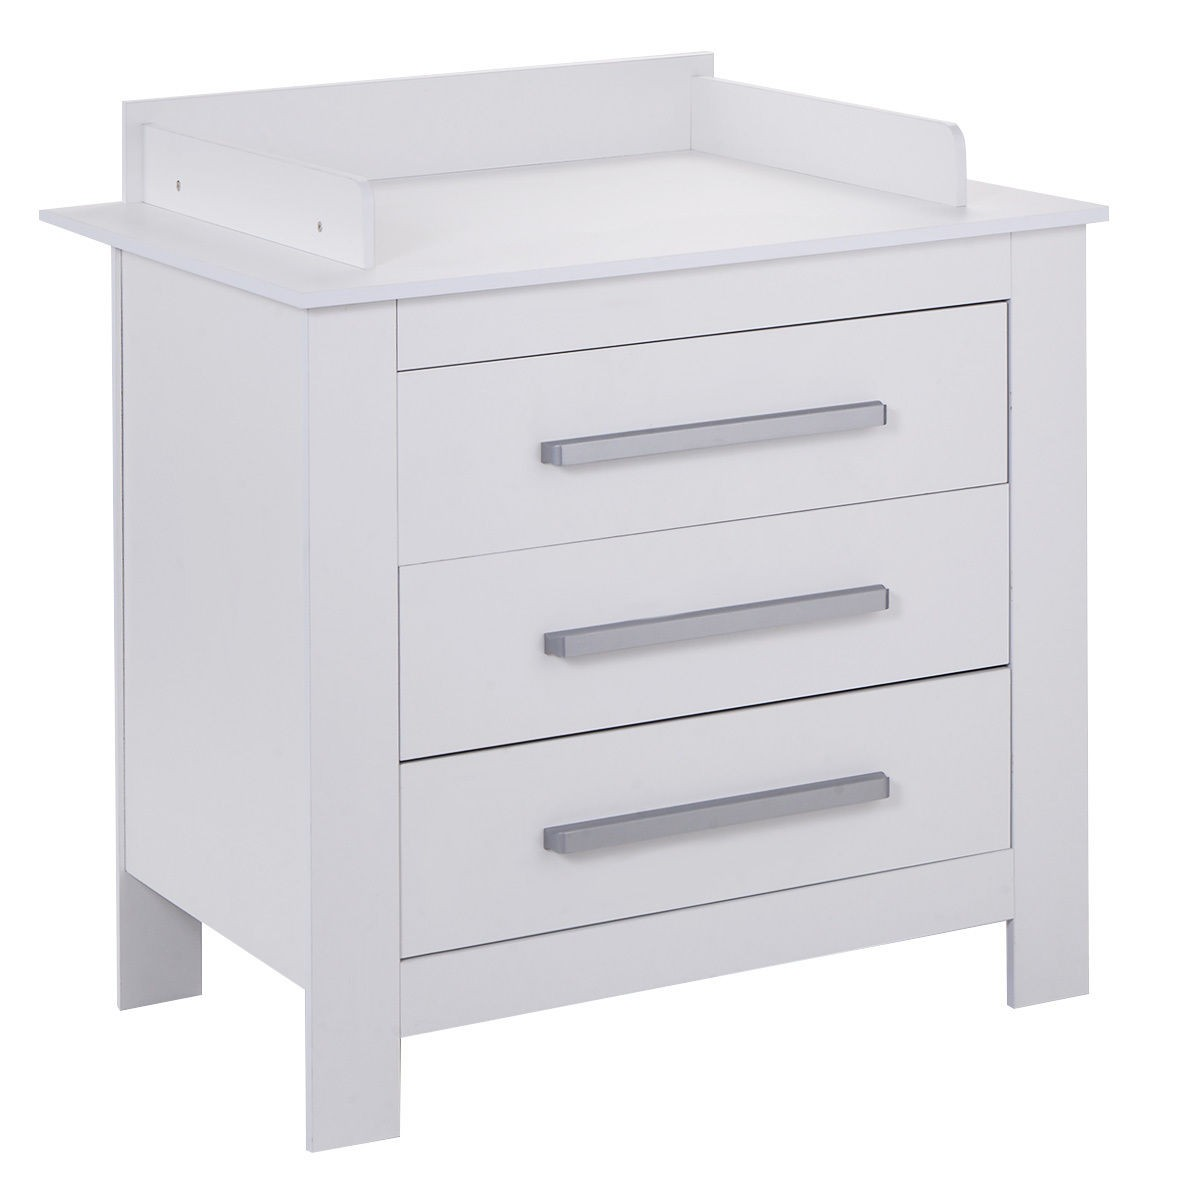 Changing Table Dresser | Target Dresser Changing Table | Diaper Organizer for Changing Table